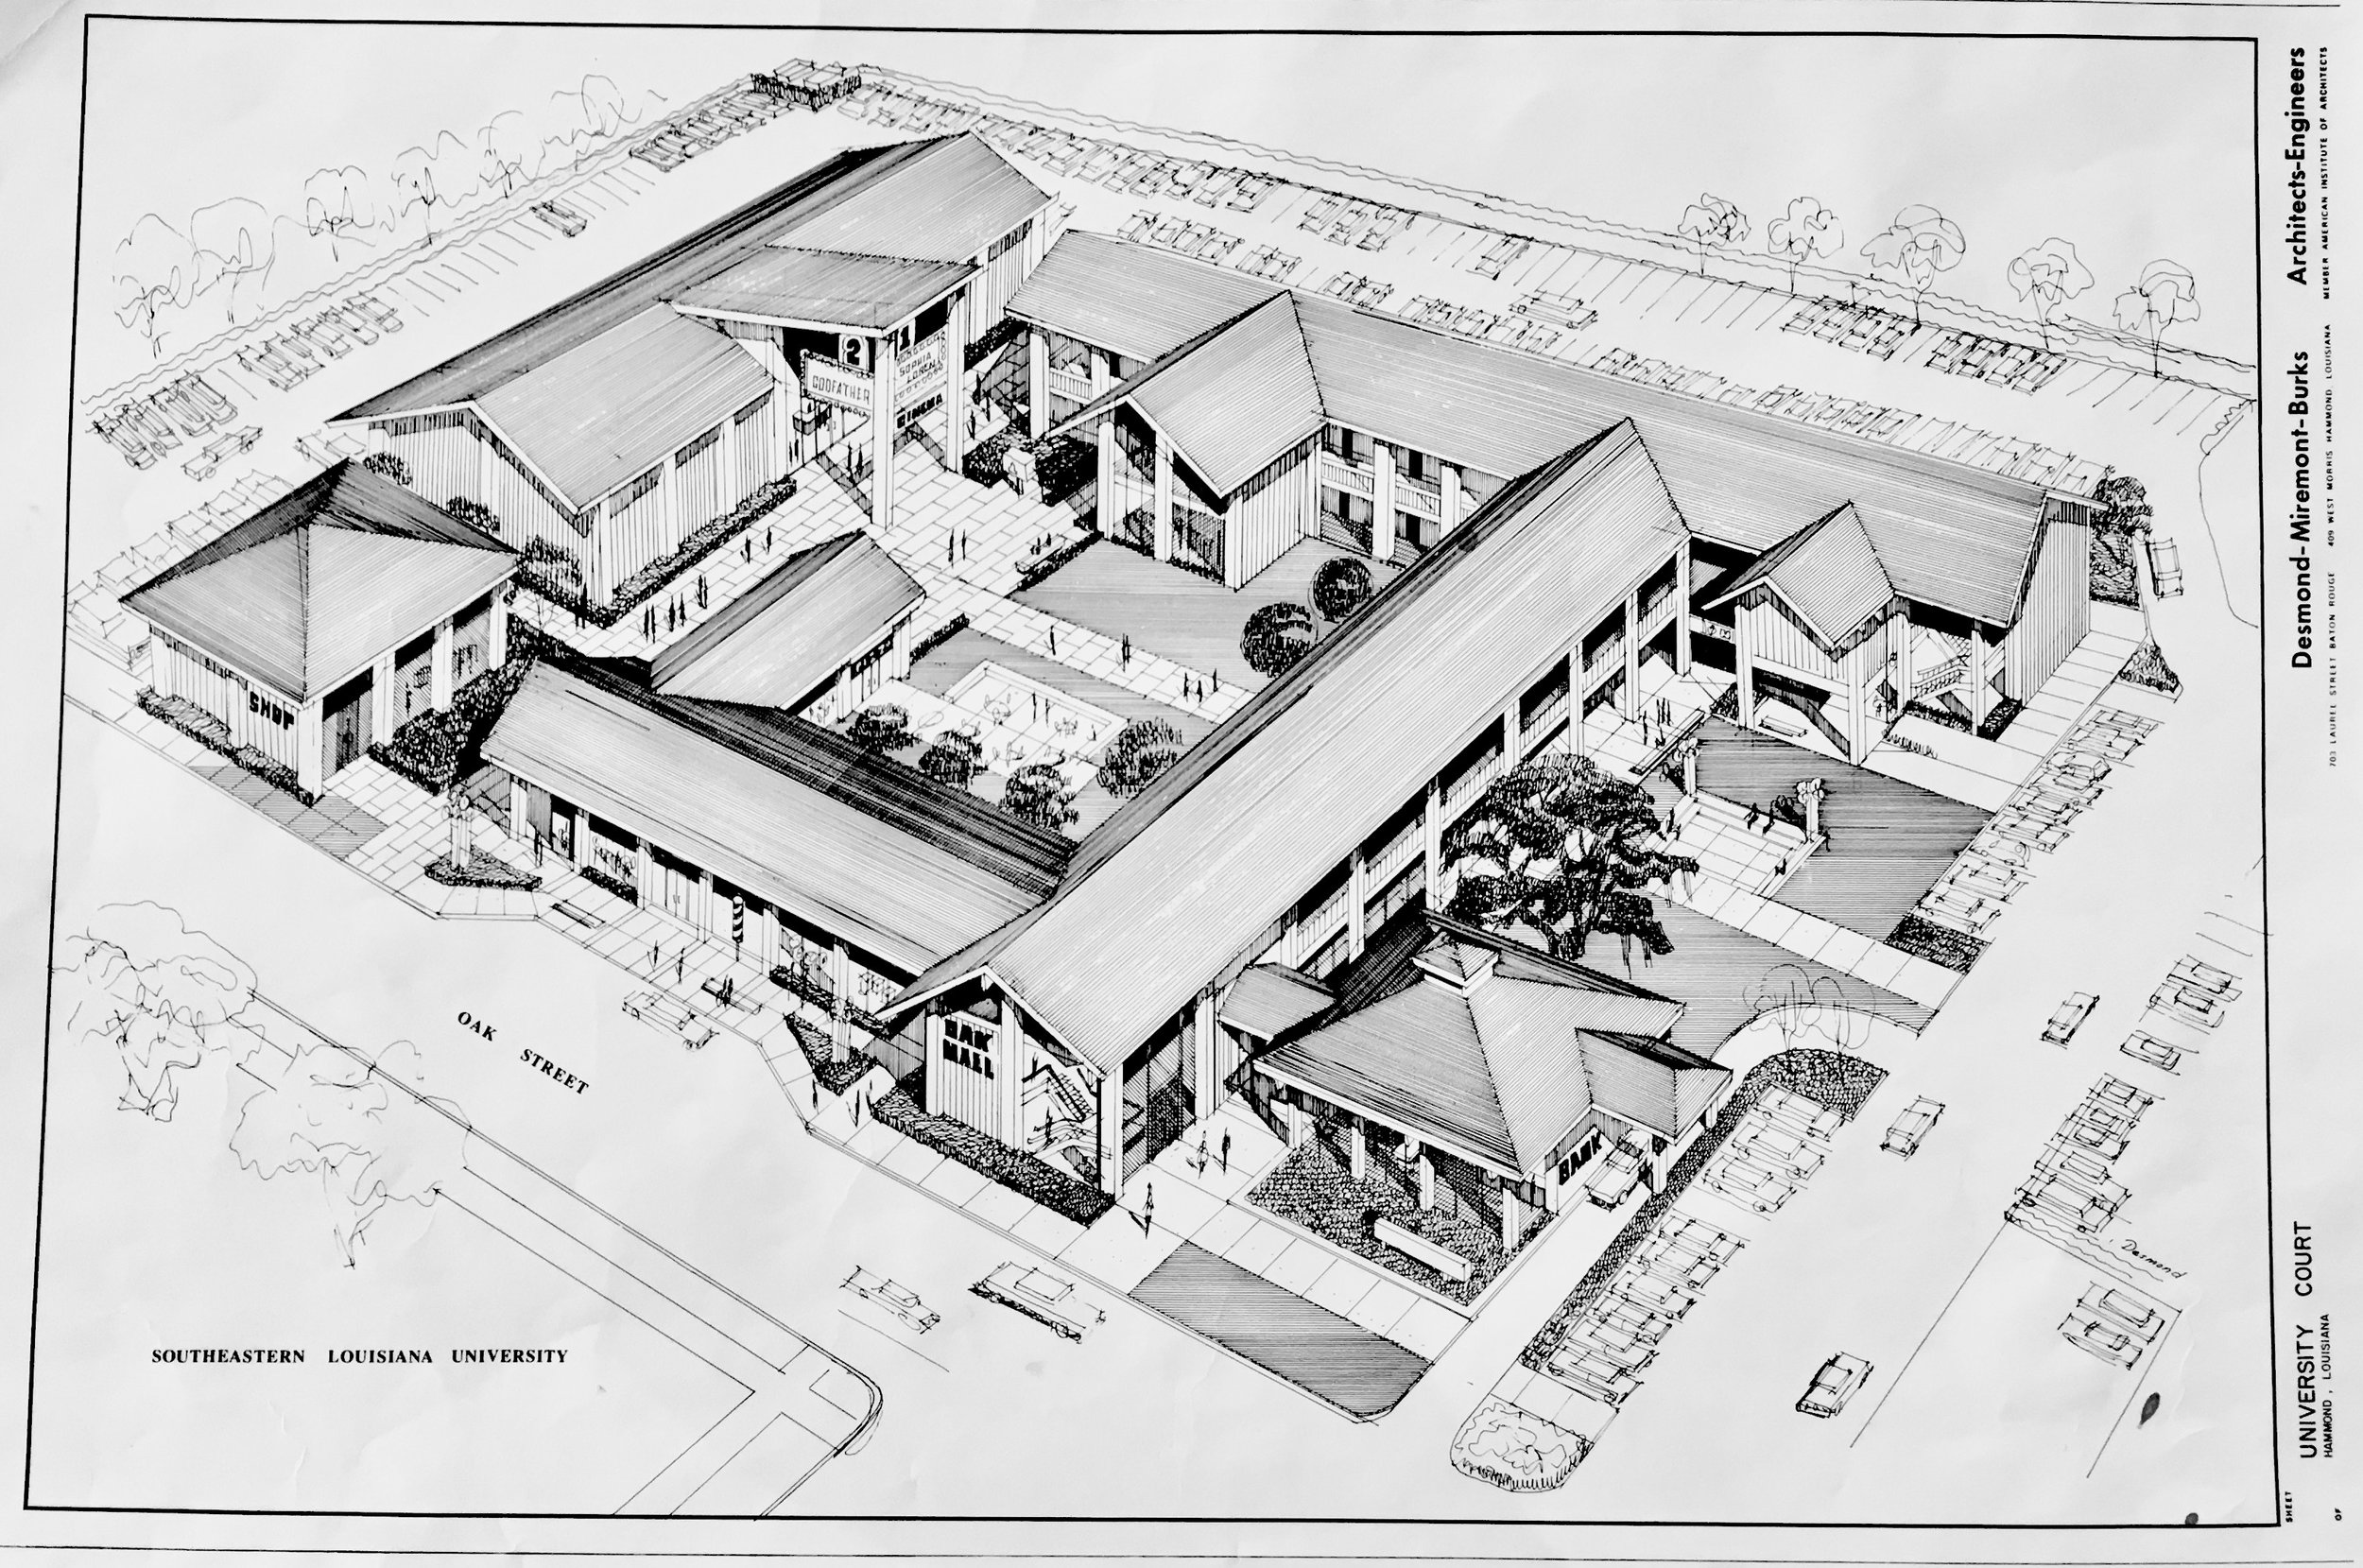 SHOPPING CENTER   JOHN DESMOND, UNIVERSITY COURT, HAMMOND, LA, JOHN DESMOND PAPERS, LOUISIANA AND LOWER MISSISSIPPI VALLEY COLLECTIONS, LSU LIBRARIES.